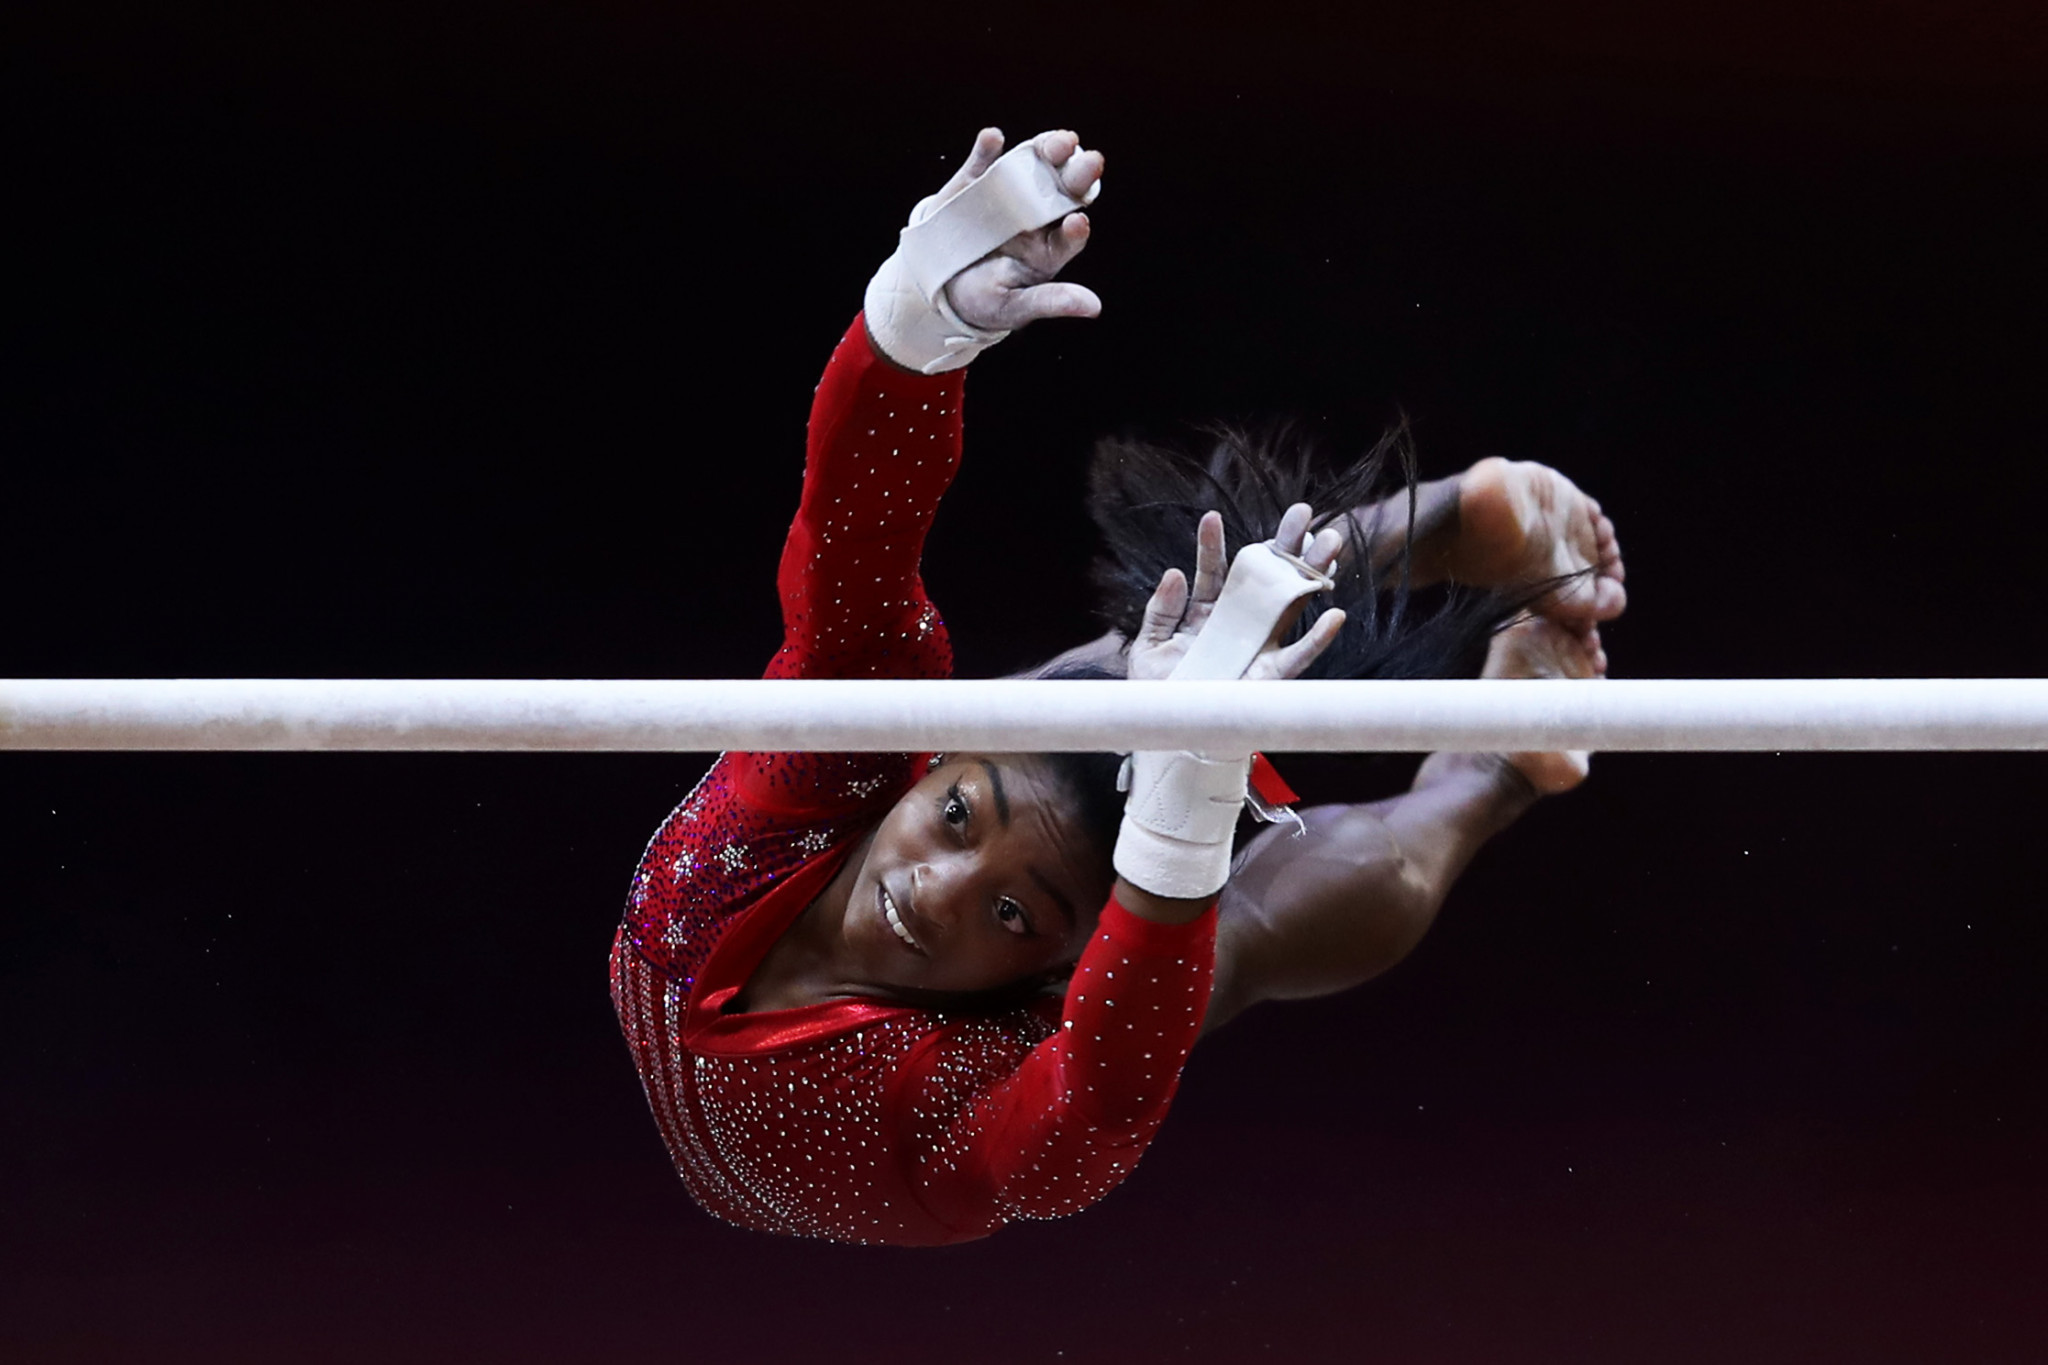 Biles spearheads United States to team title by huge margin at Artistic Gymnastics World Championships